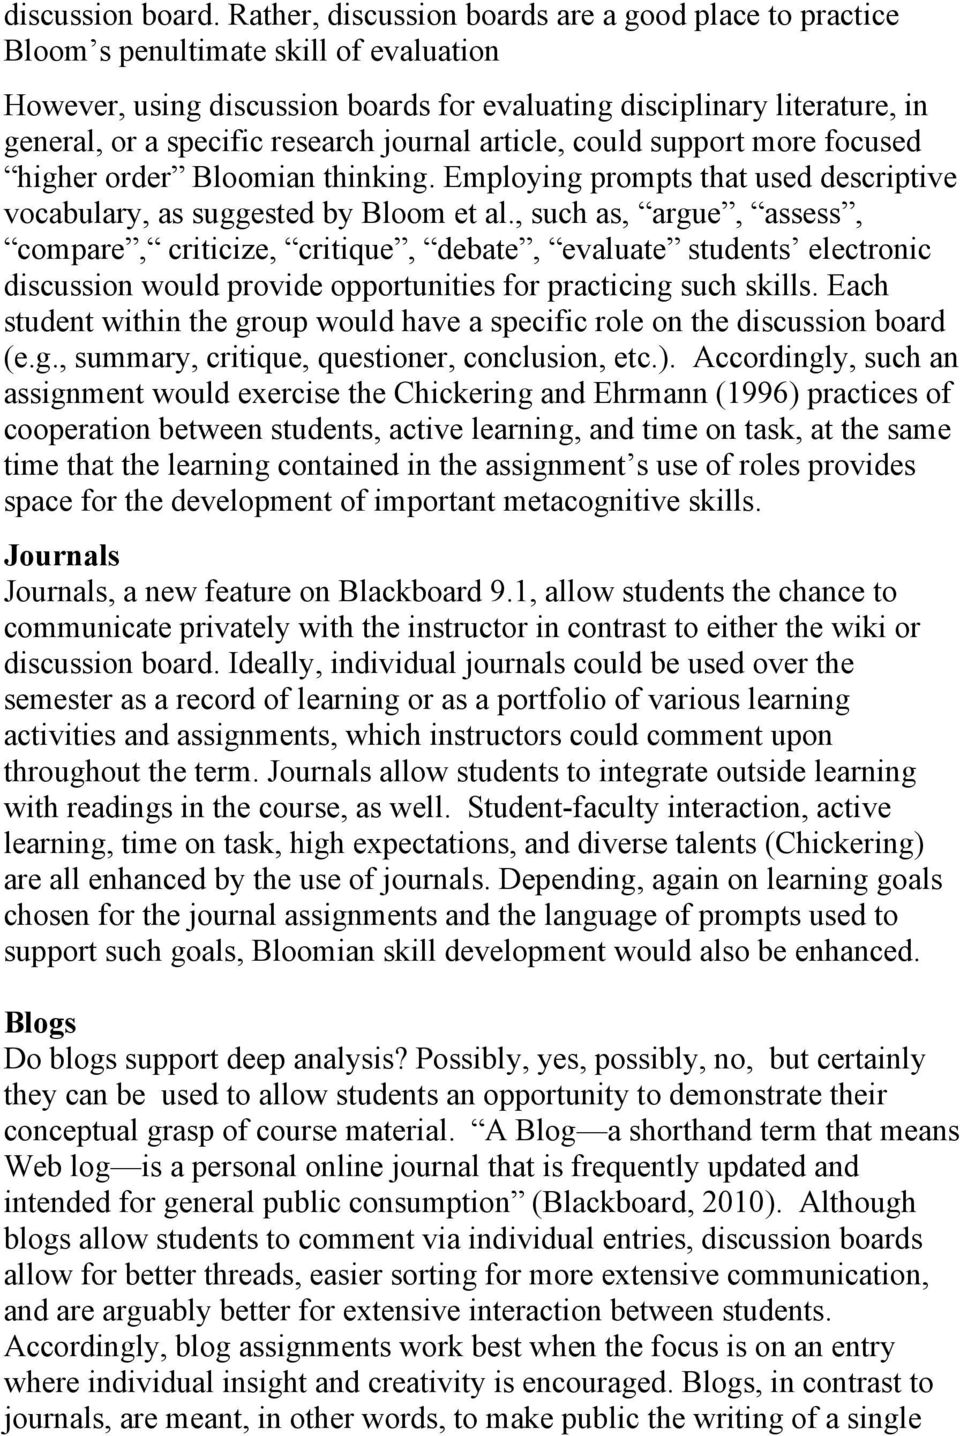 research journal article, could support more focused higher order Bloomian thinking. Employing prompts that used descriptive vocabulary, as suggested by Bloom et al.